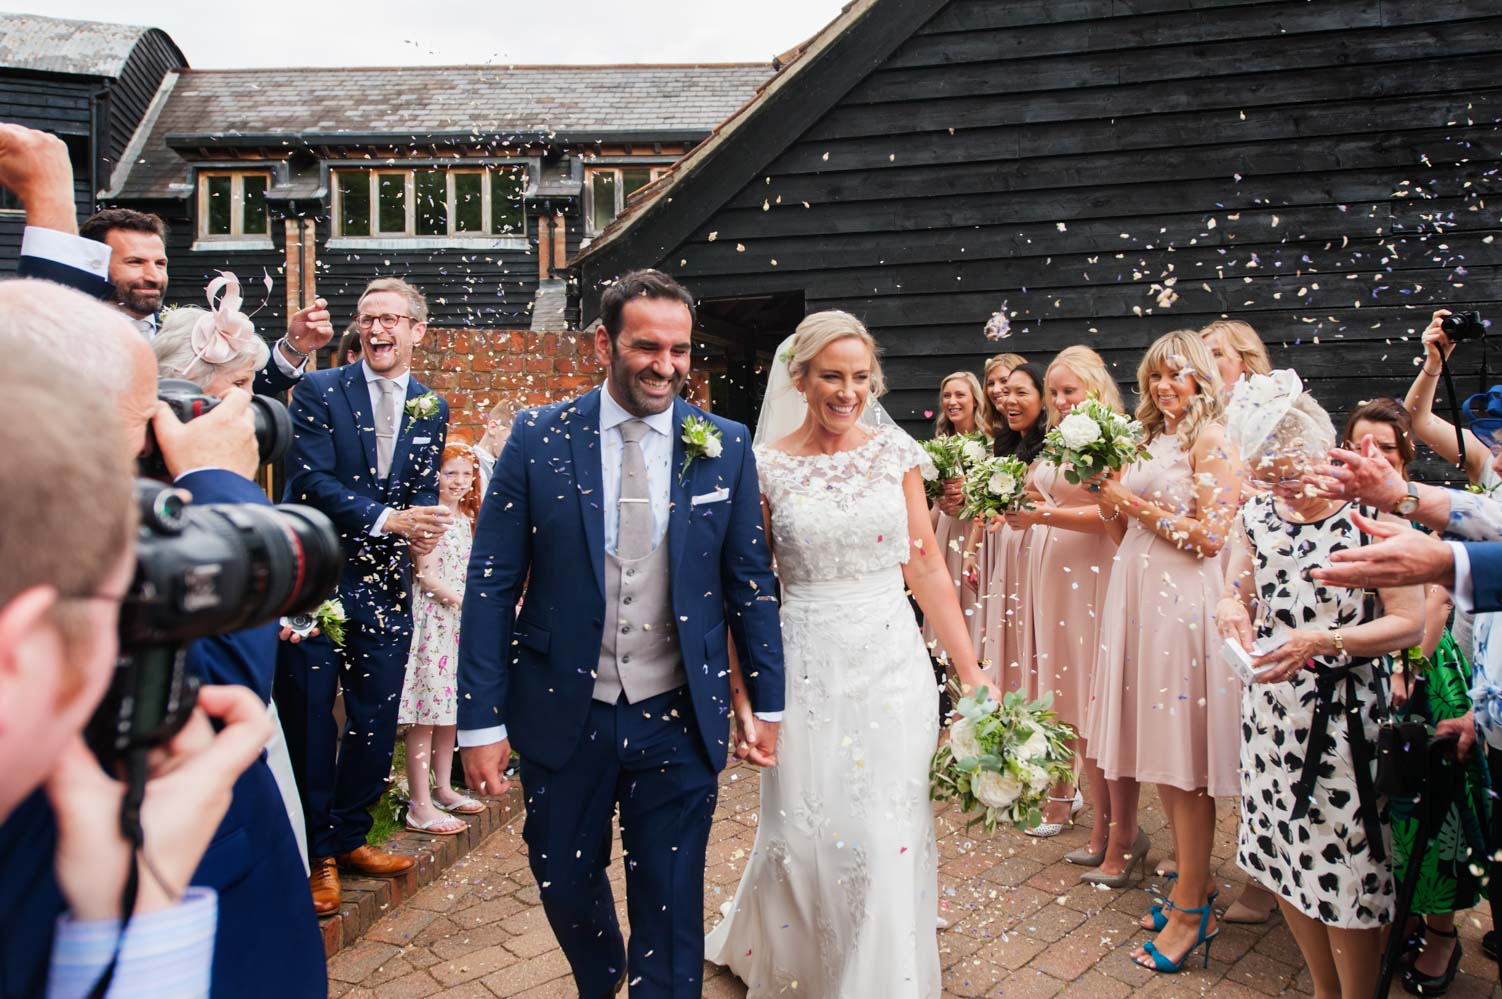 Confetti at Tewin Bury Farm wedding by Sussex wedding photographer James Robertshaw.